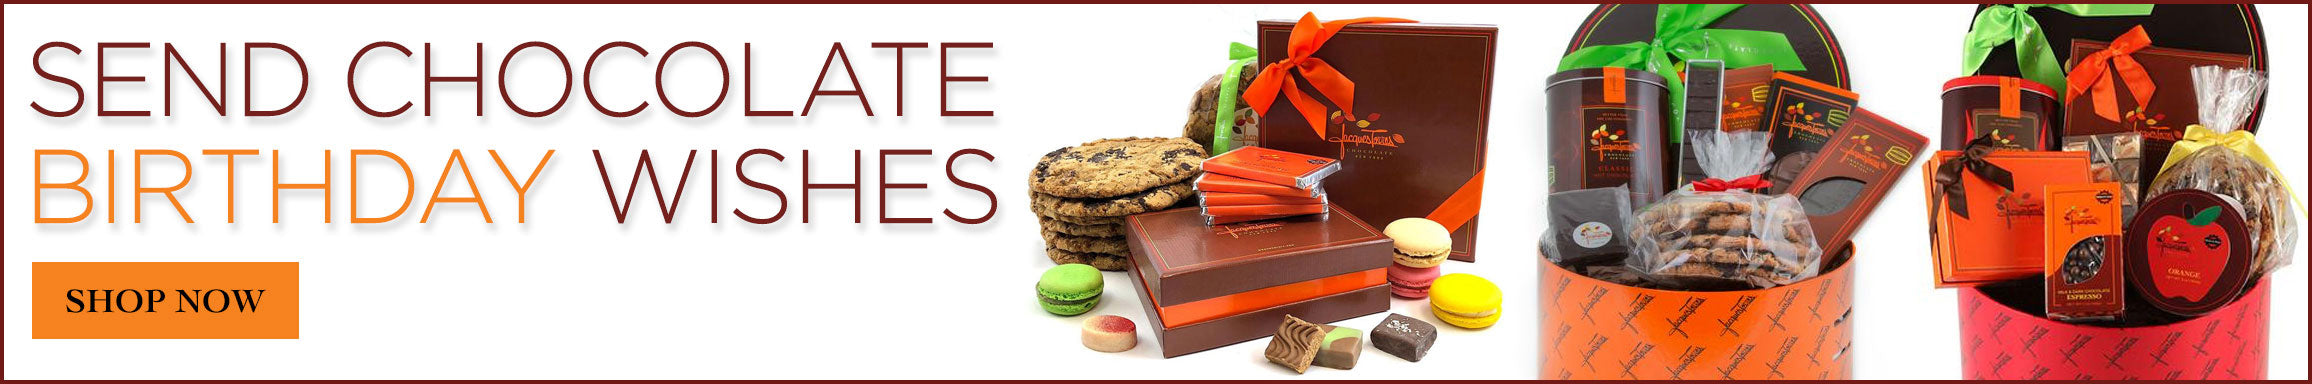 Send Birthday Gifts from Jacques Torres Chocolate